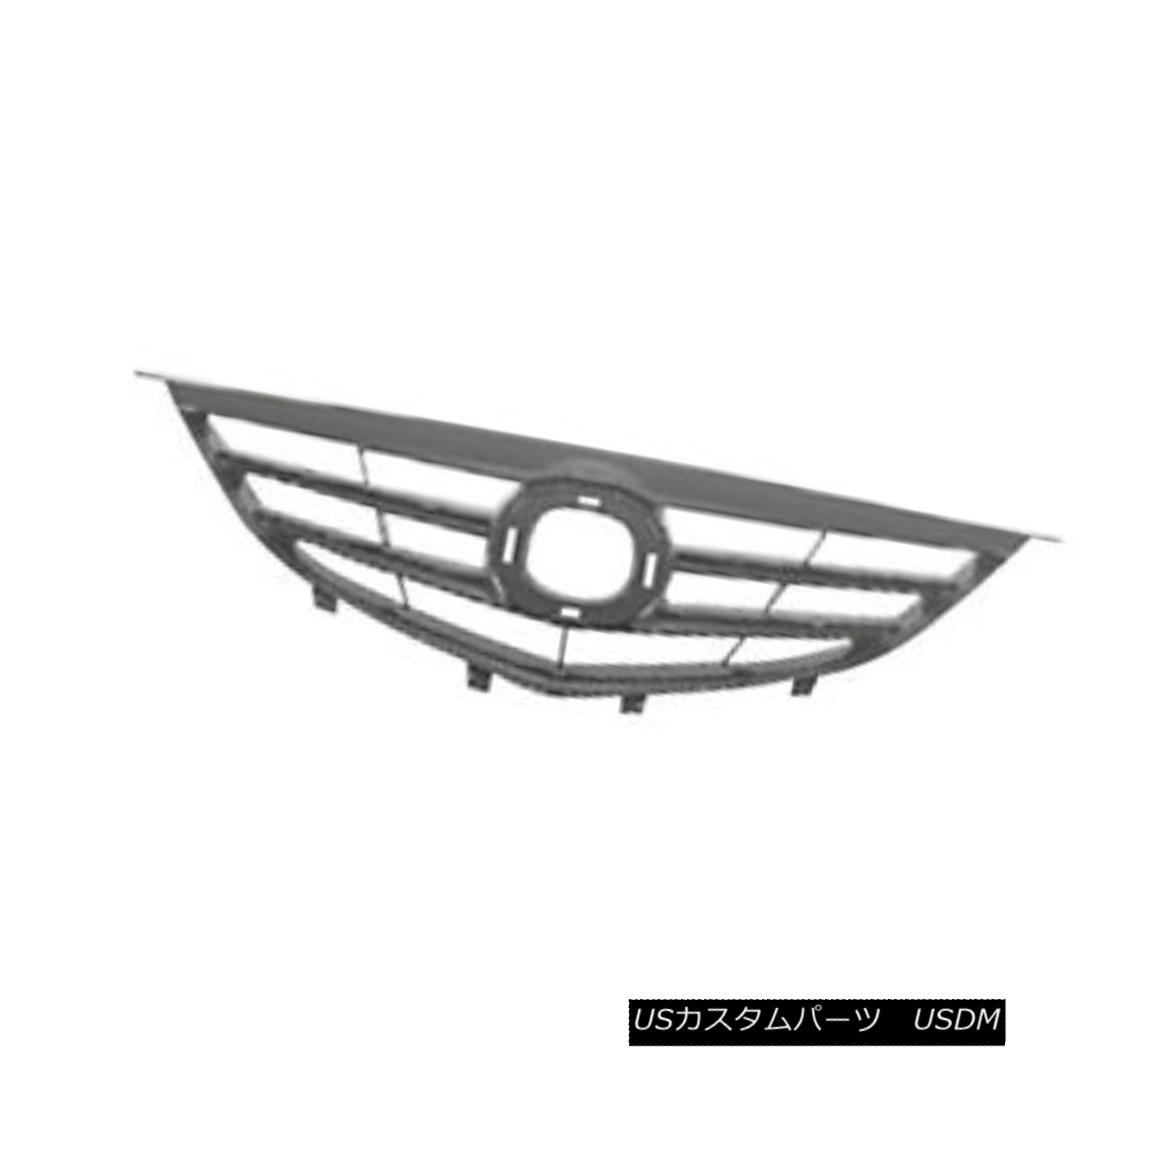 グリル Replacement Grille for 2004 2005 Mazda 6 Brand New 2004年の交換用グリル2005 Mazda 6 Brand New